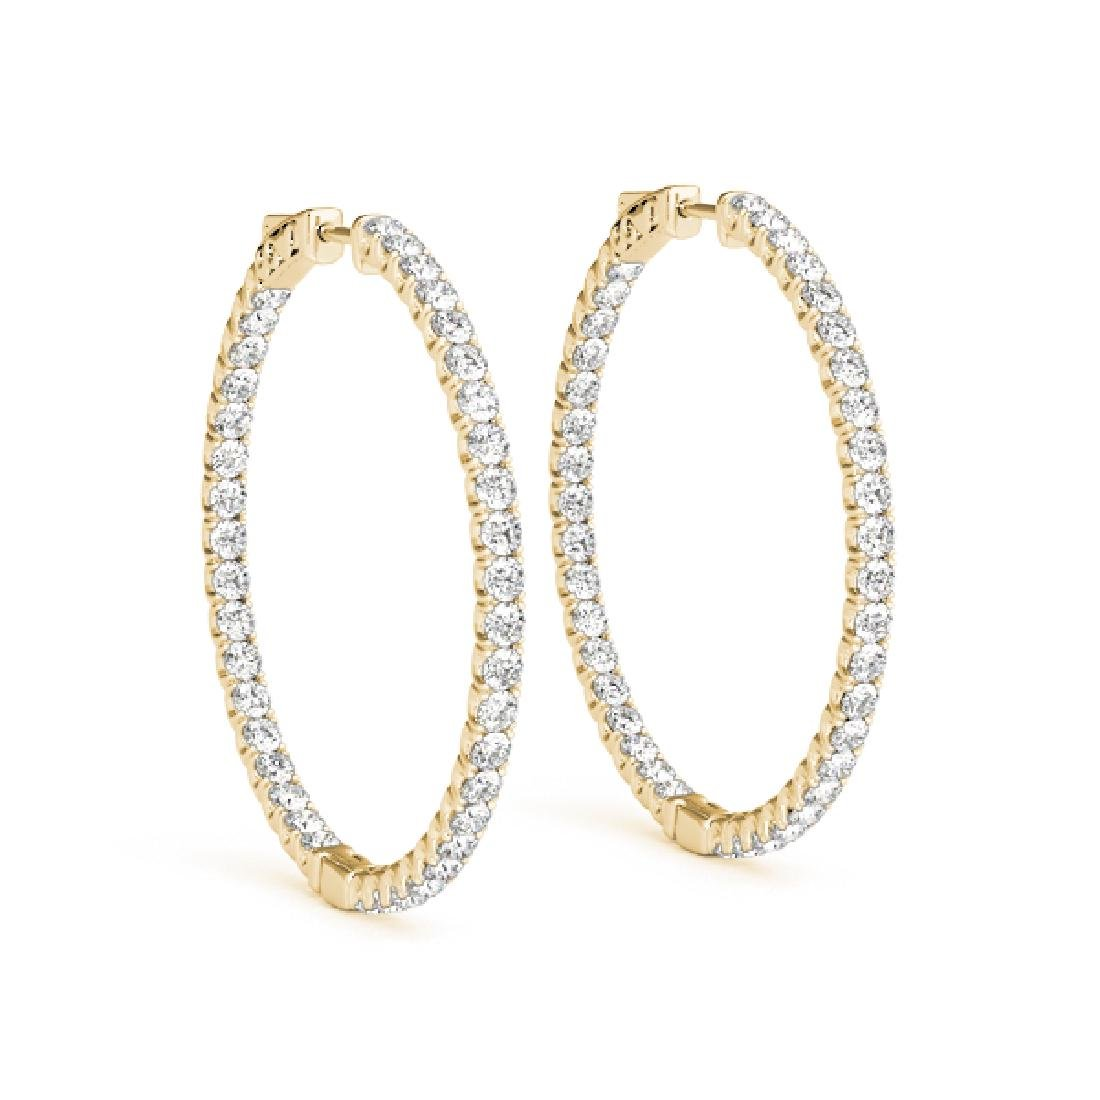 1.5 CTW Diamond VS/SI Certified 24 Mm Hoop Earrings 14K - 2